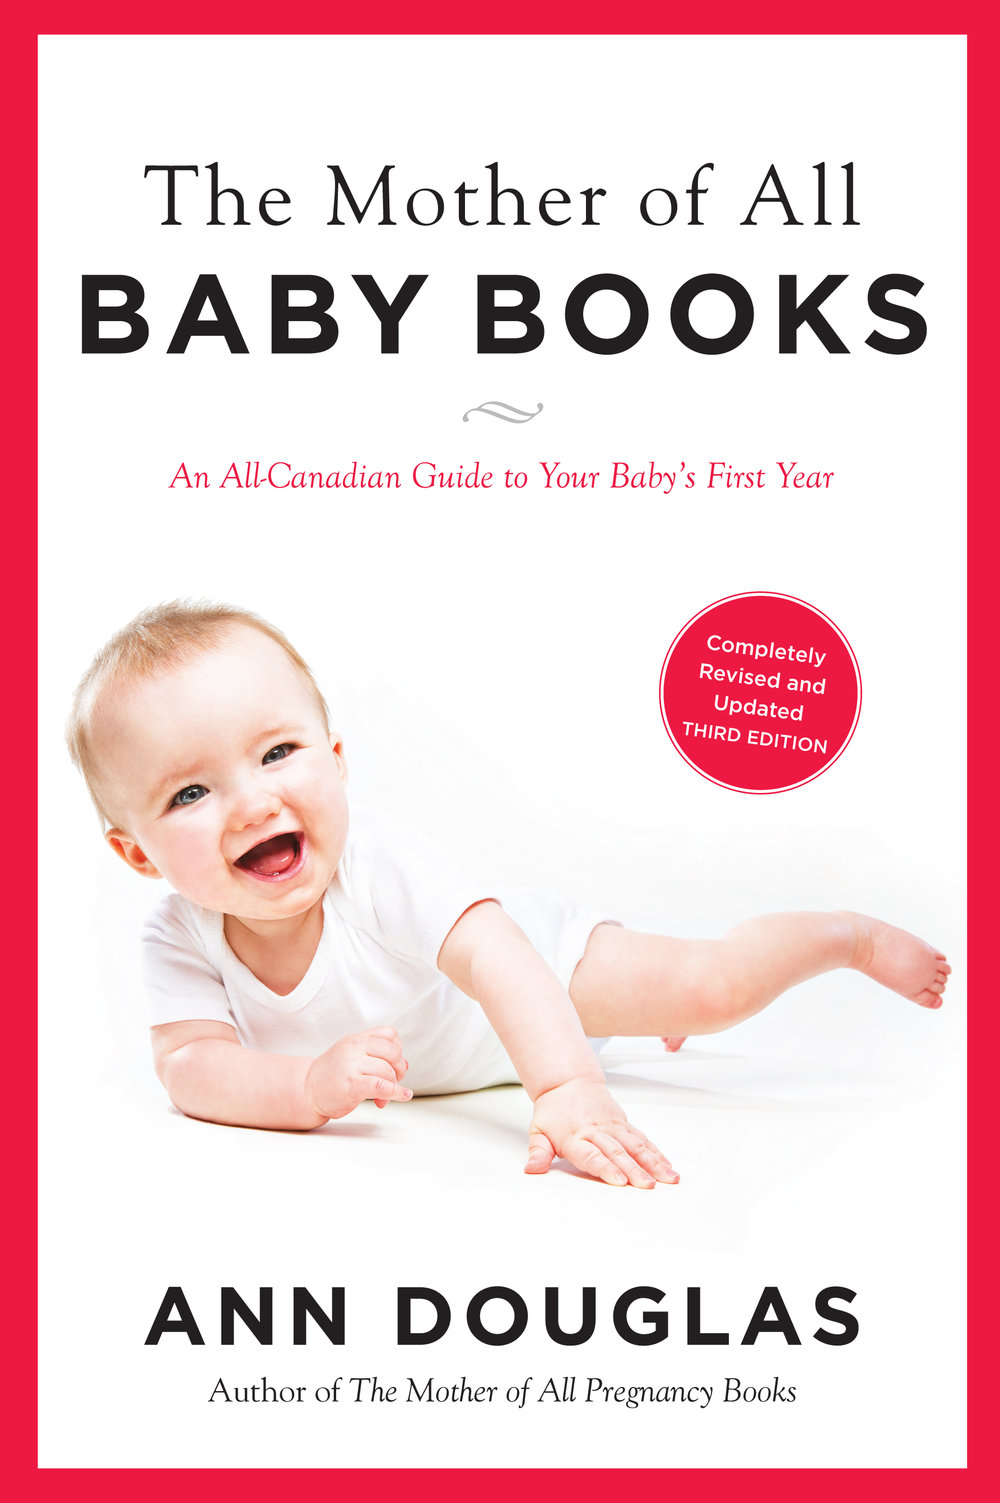 Mother of All Baby Books.jpg